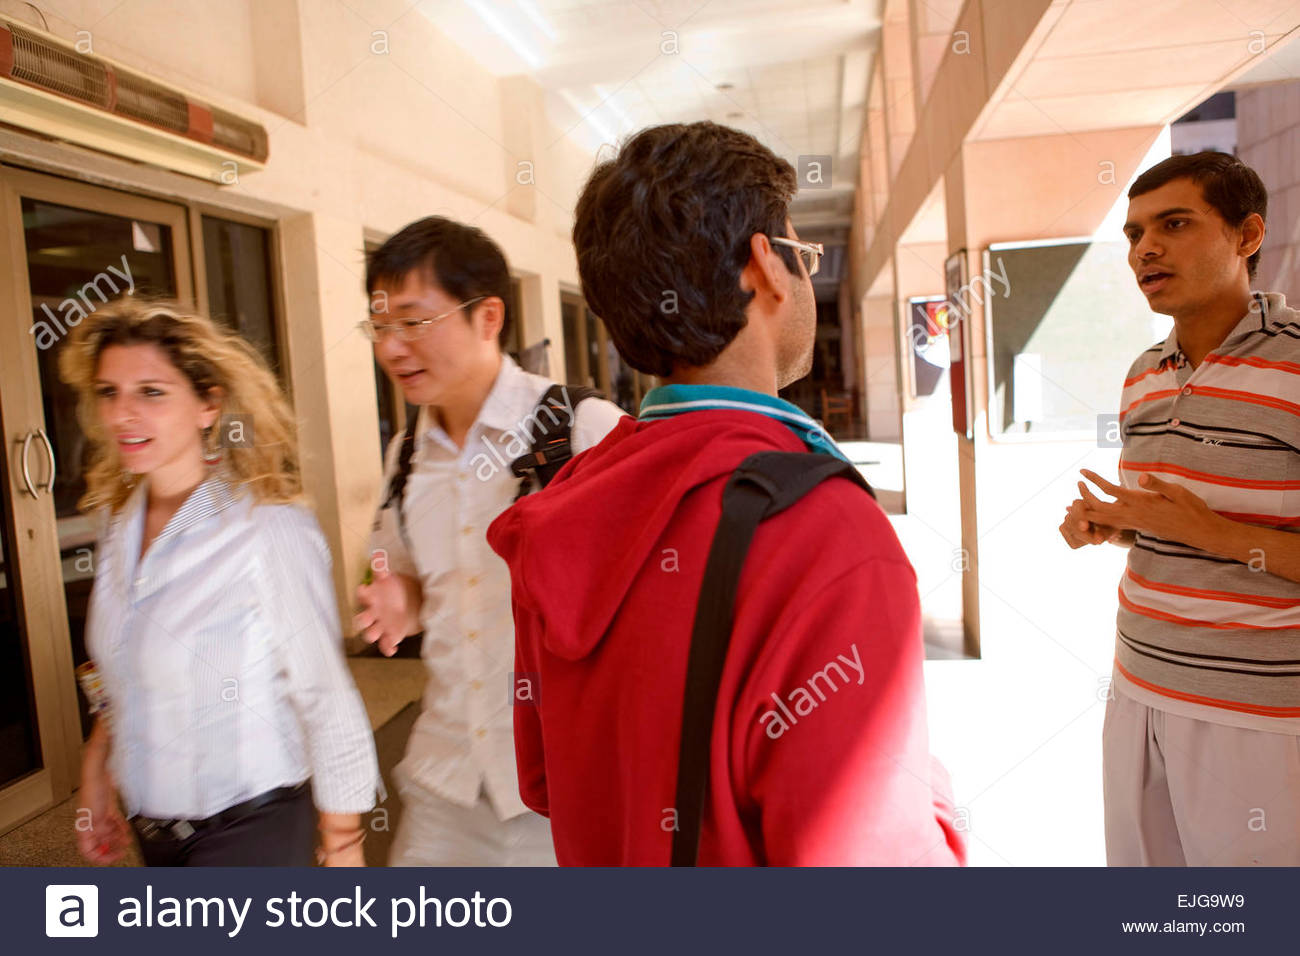 Hyderabad, Hightech-Stadt, Indian School of Business, Indien, Chinesisch und weißen Studenten. Stockbild